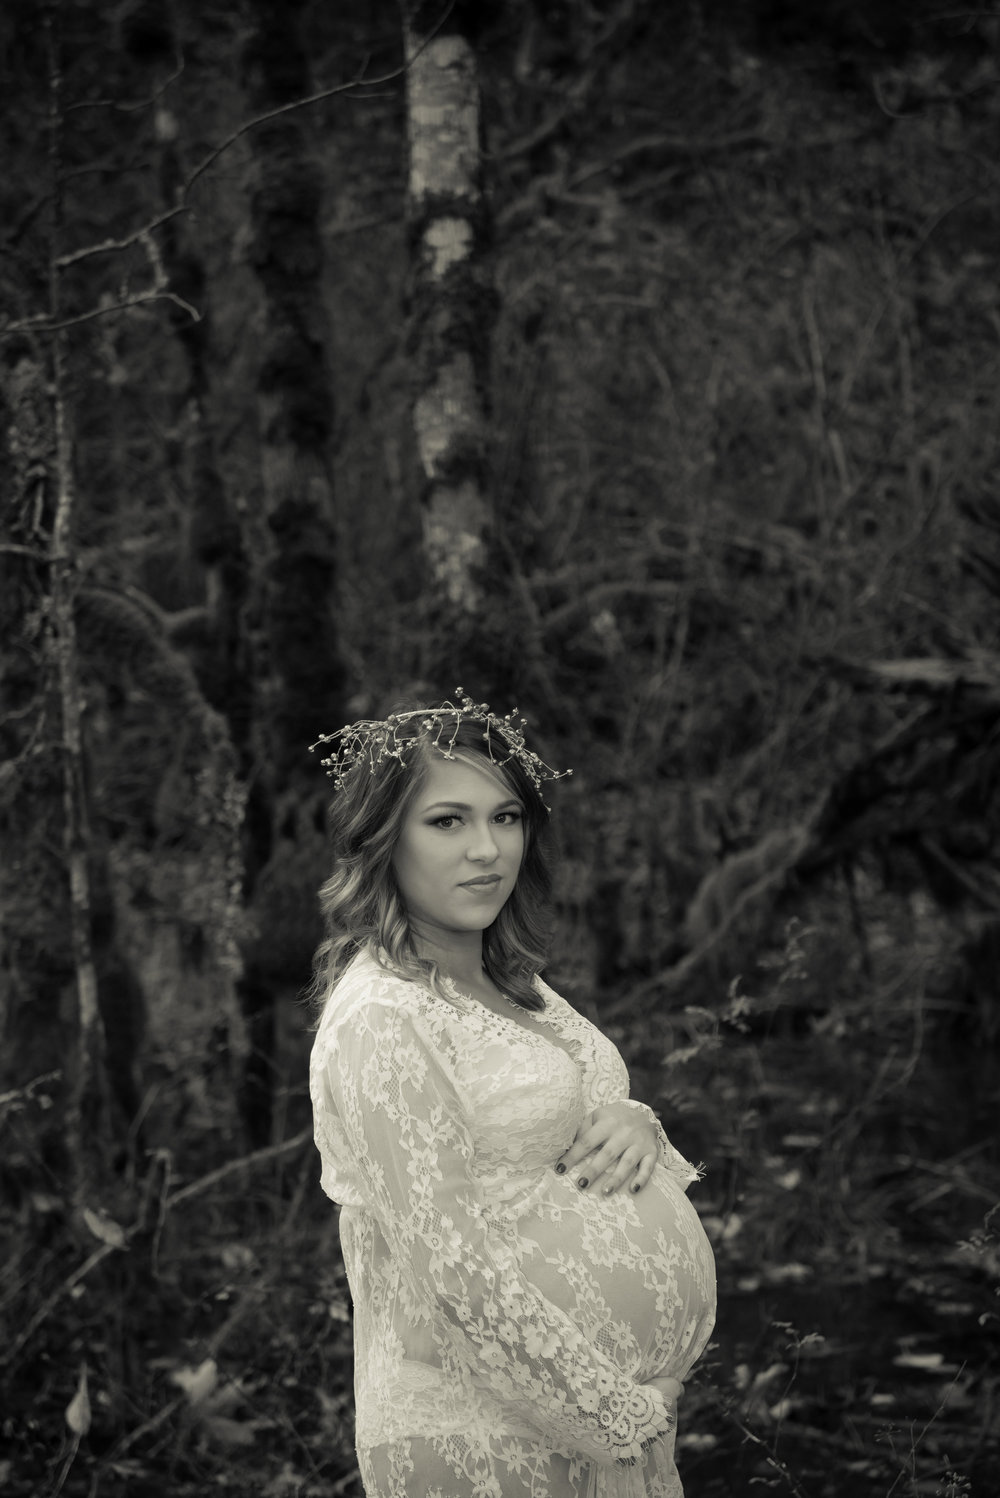 MATERNITY PHOTOS | Dreamy Forest Maternity Photos - Amber Hempen Photography